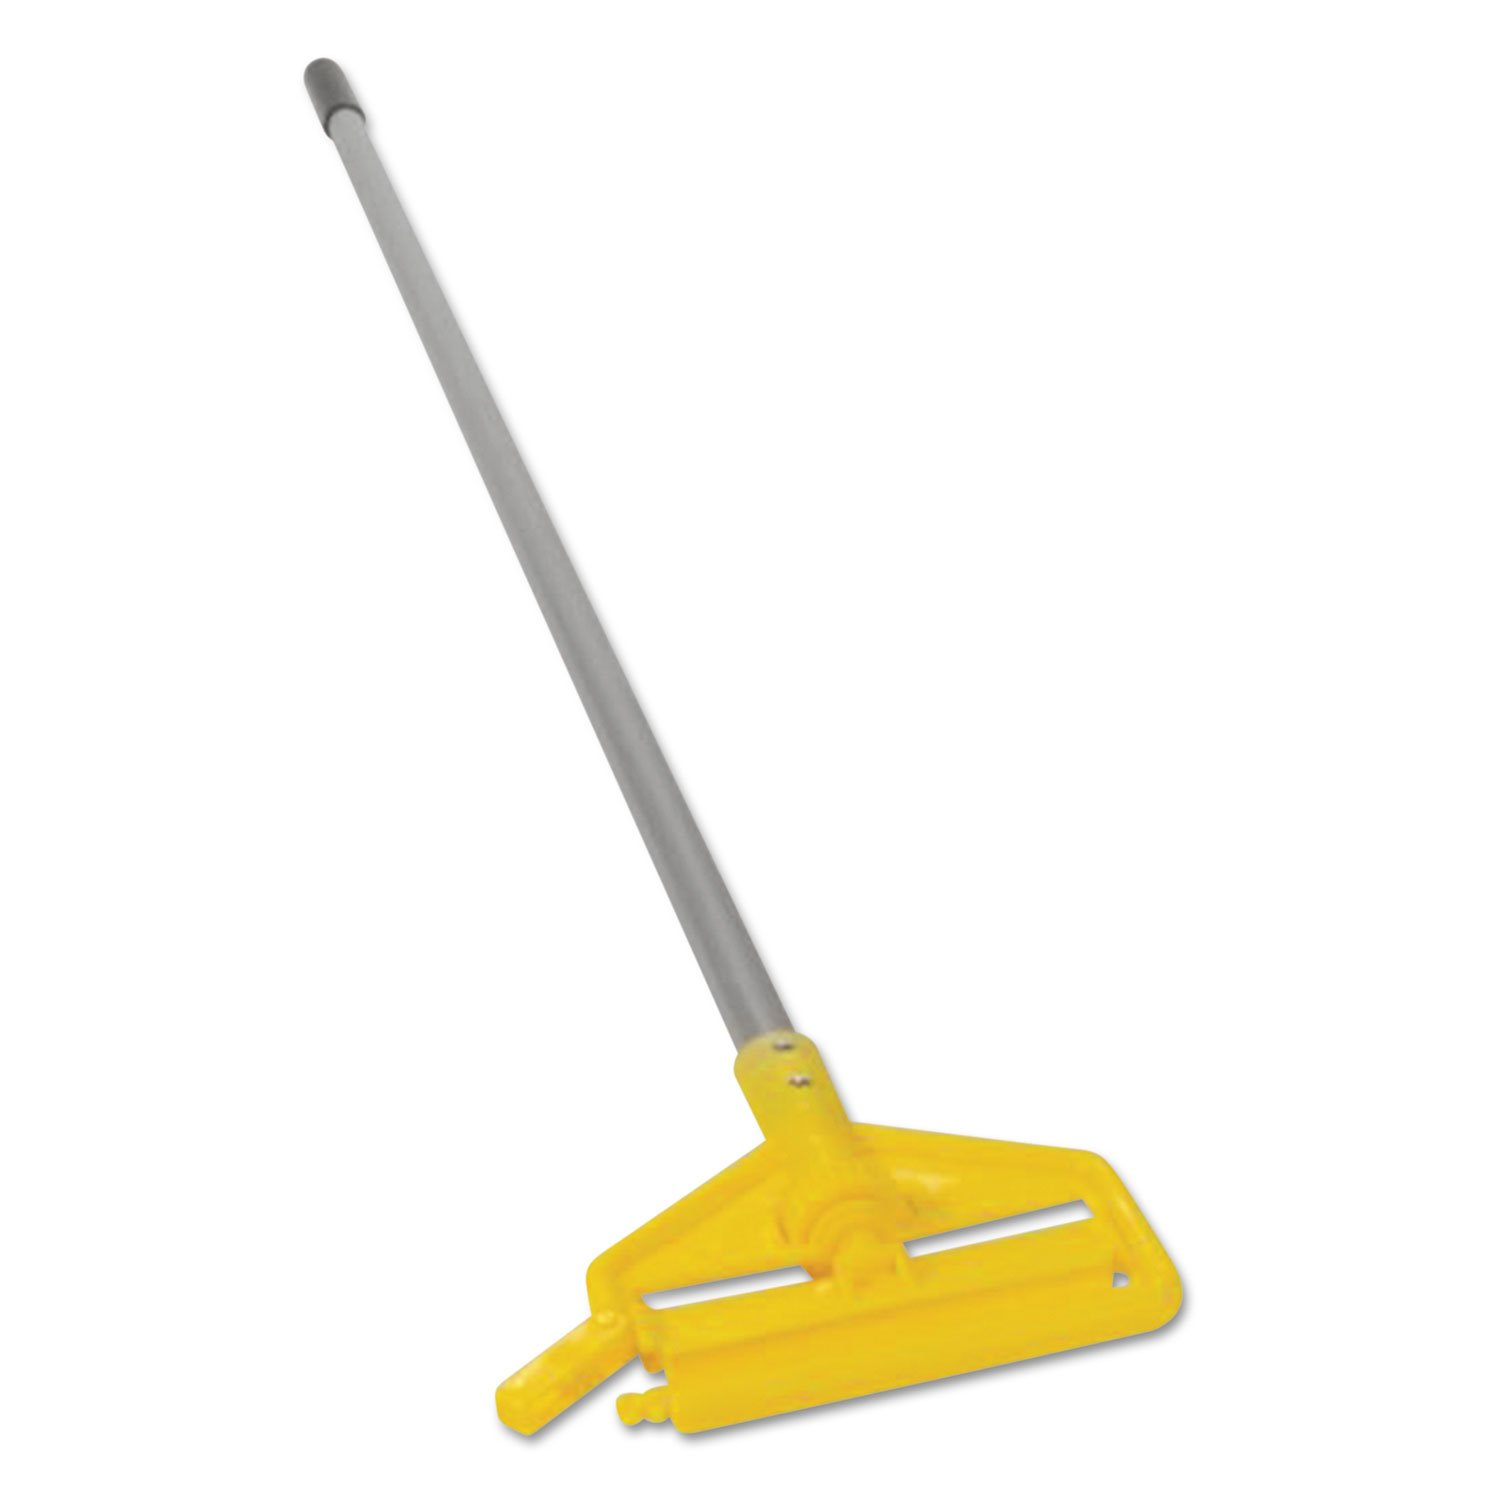 Rubbermaid Commercial H136 Invader Aluminum Side-Gate Wet-Mop Handle, 1 dia x 60, Gray/Yellow